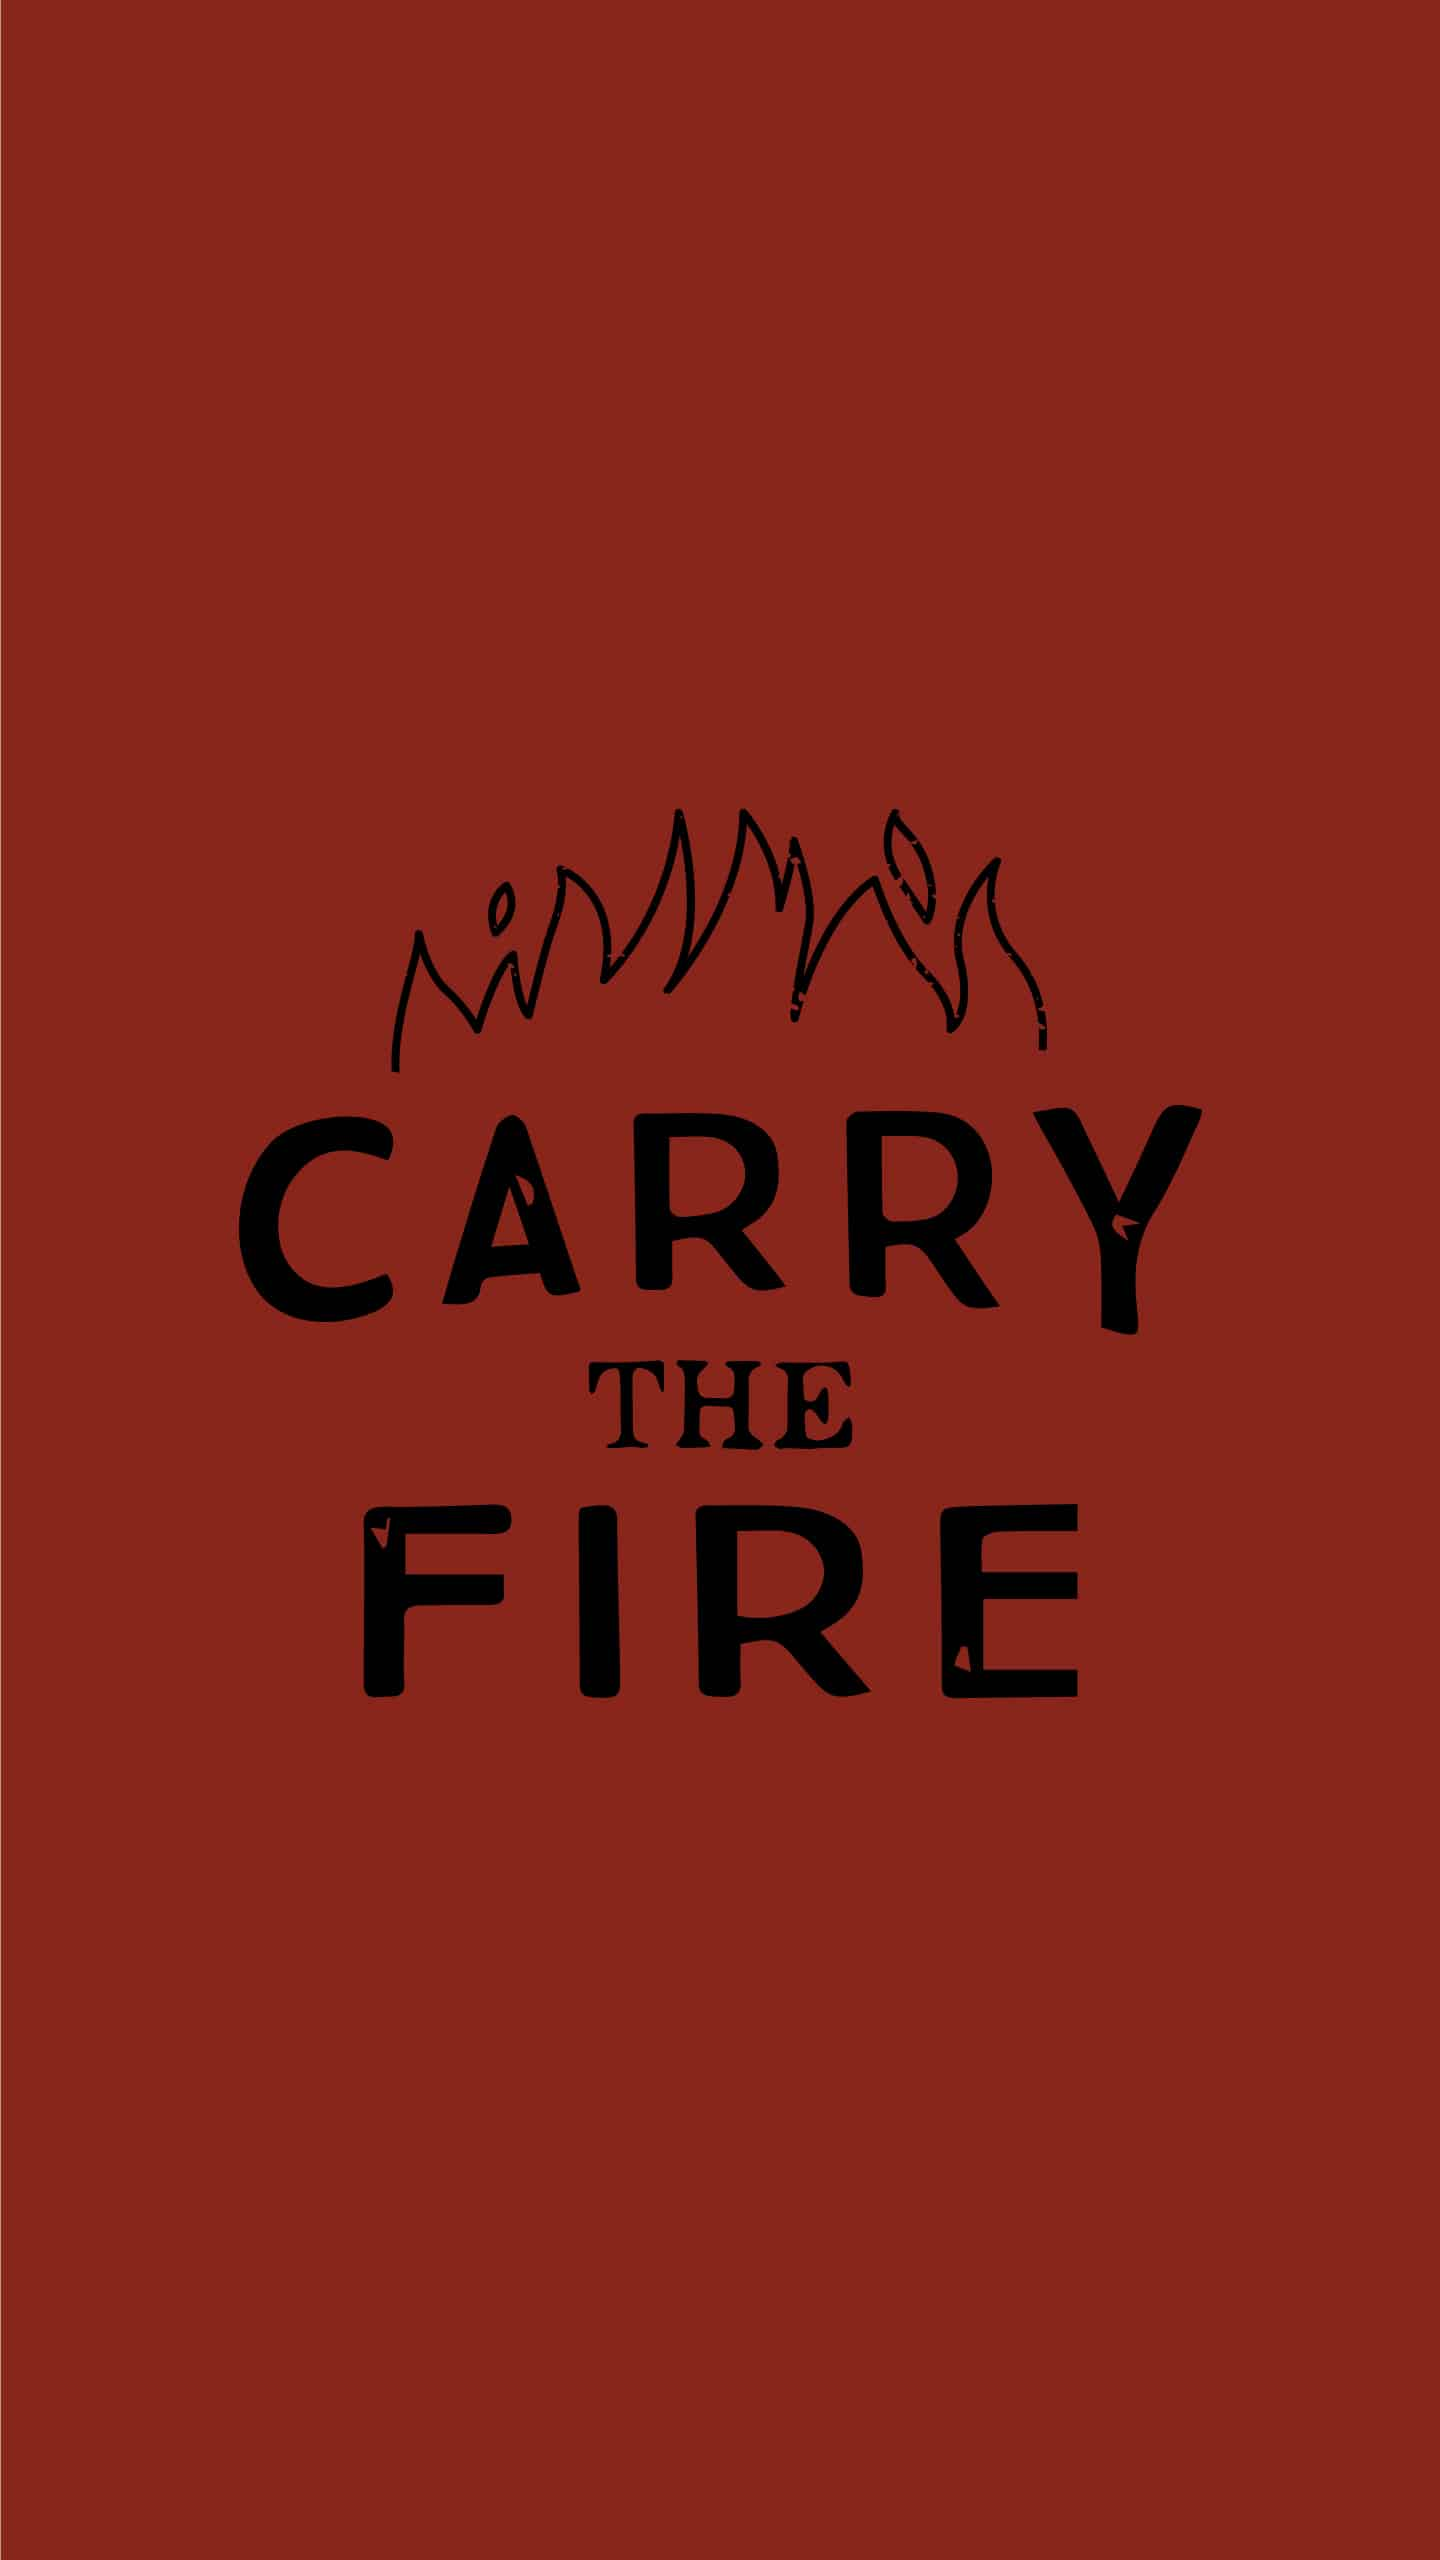 Carry the fire wallpaper# 2.